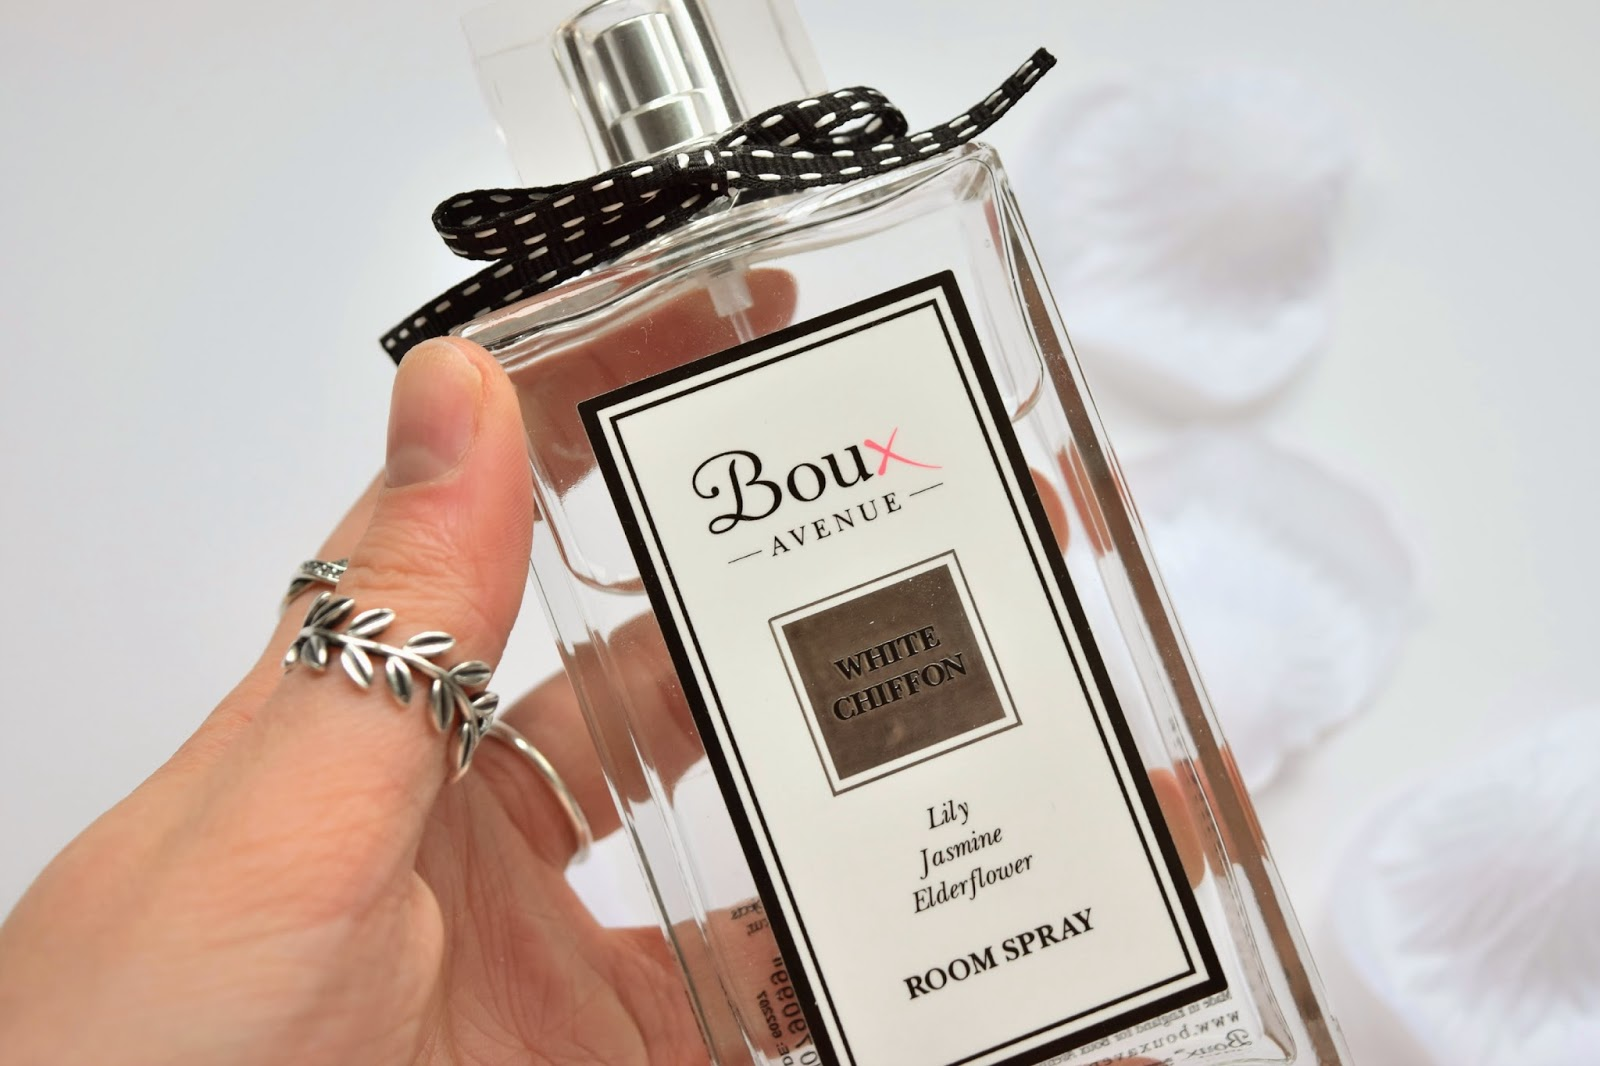 Boux Avenue, Room Spray, Review, White Chiffon